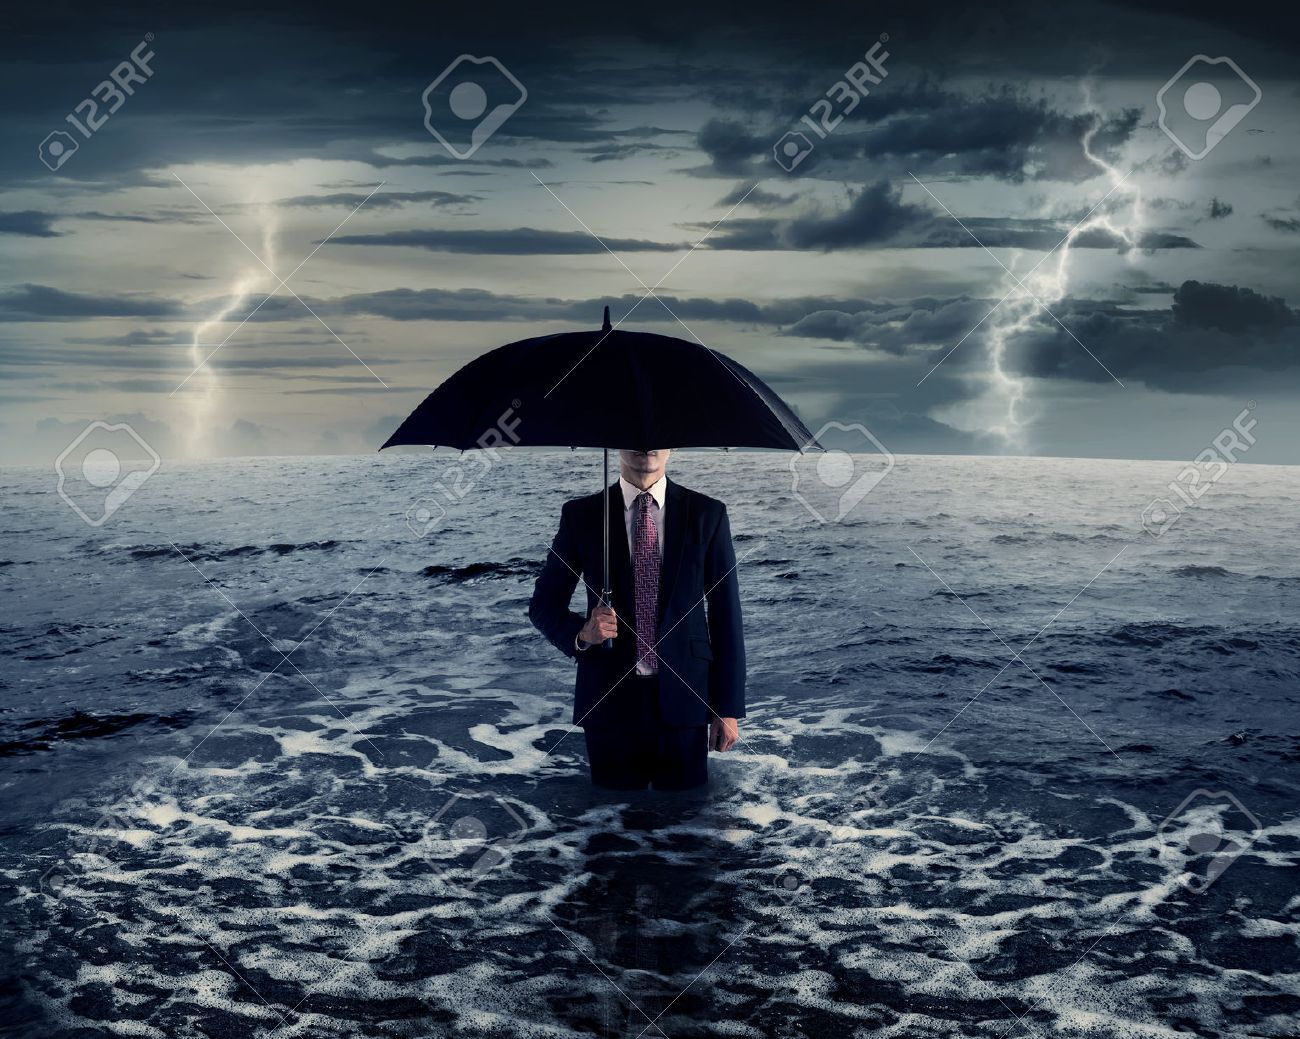 ocean storm stock photos royalty free ocean storm images and pictures